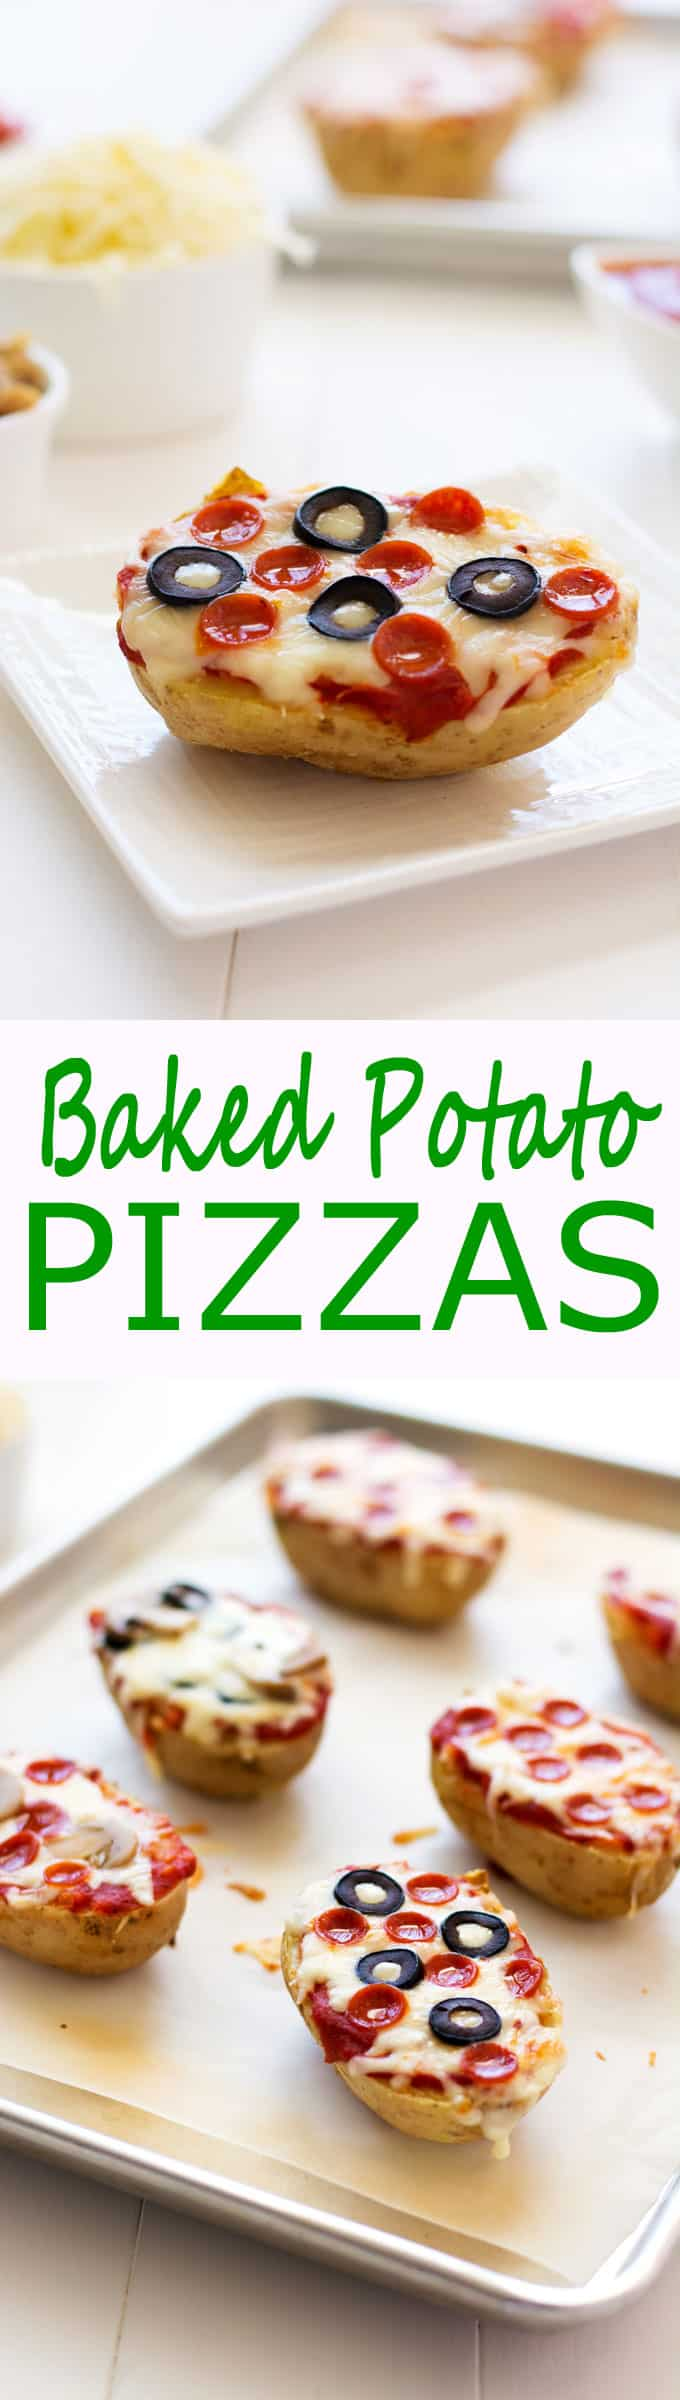 These baked potato pizzas utilize baked potatoes for the crust. Top with pizza sauce, cheese and your favorite toppings for an easy dinner everyone will love!